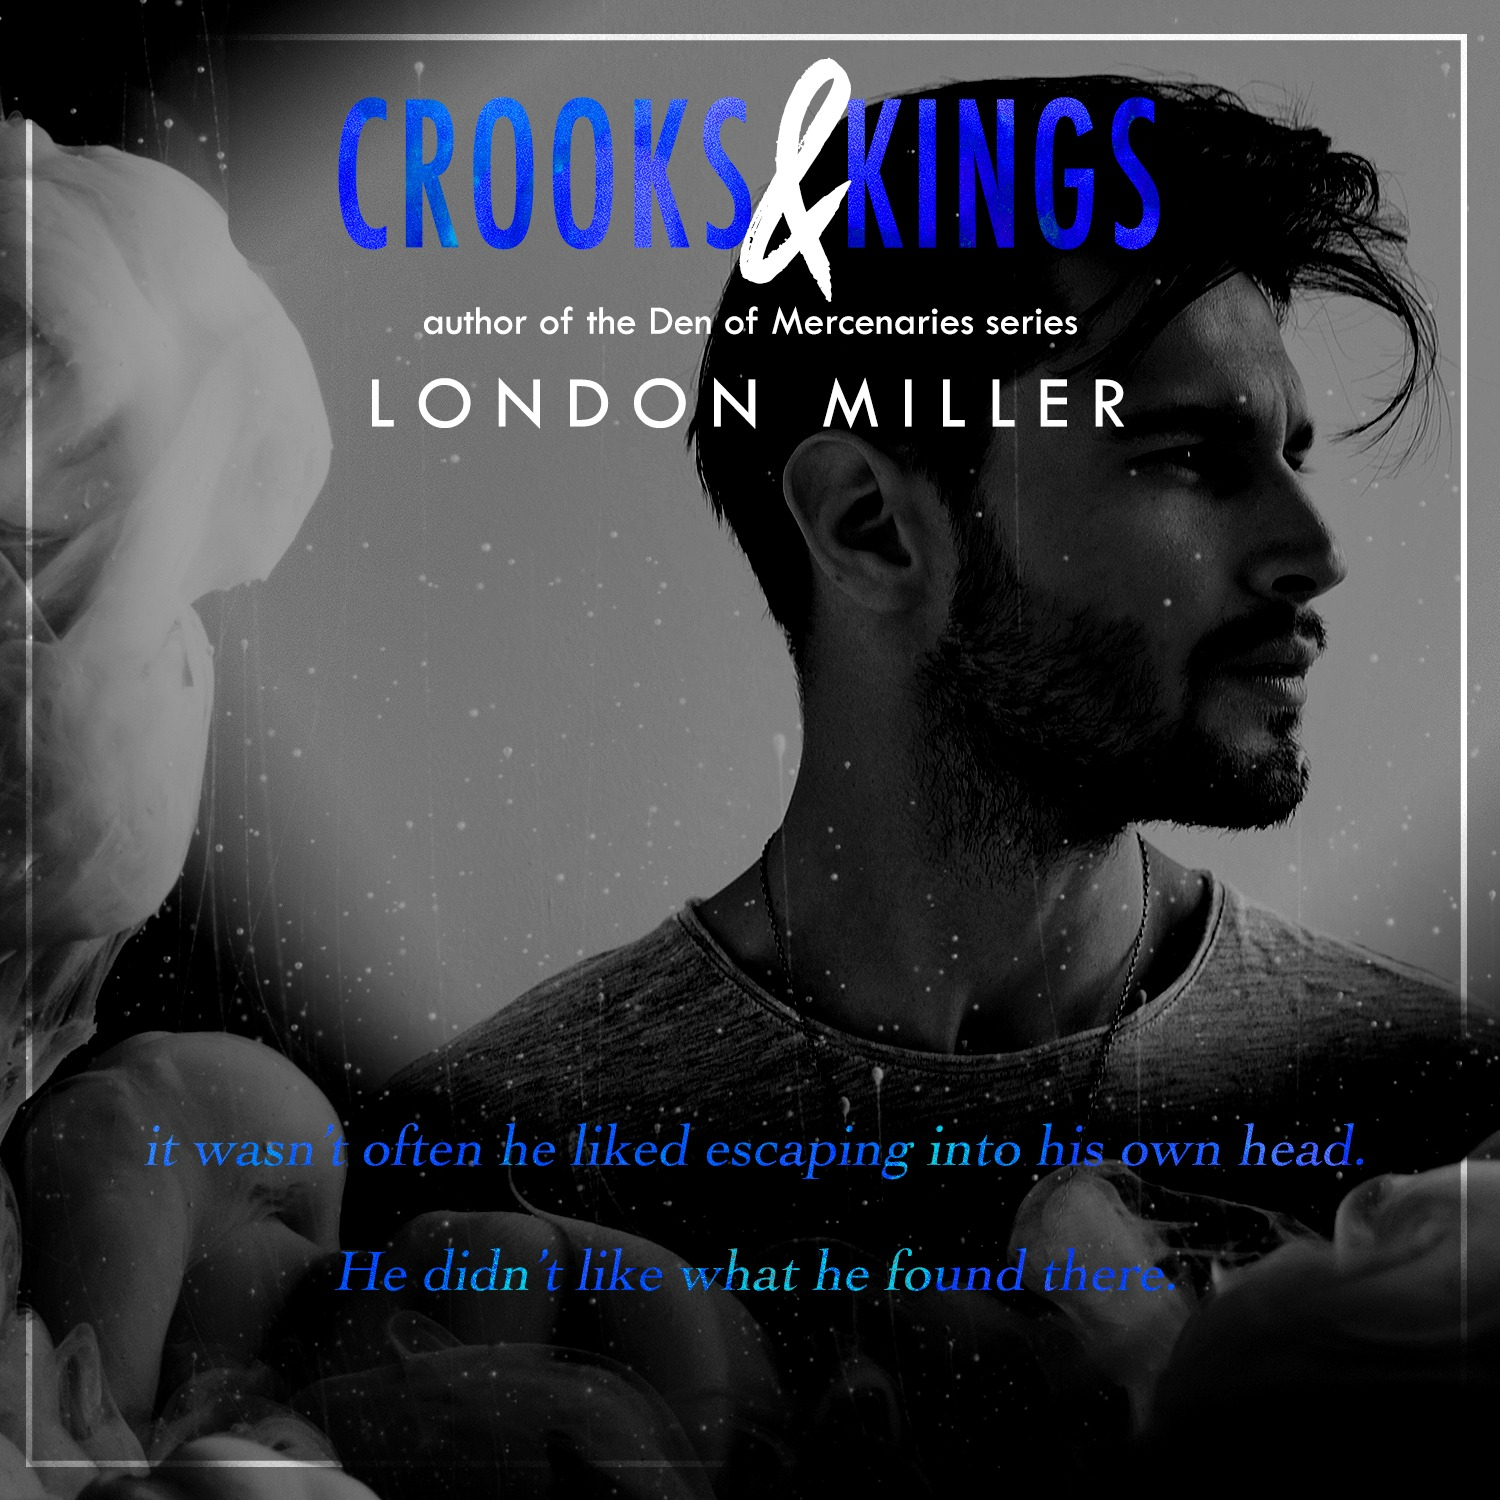 Cover Reveal Crooks and Kings